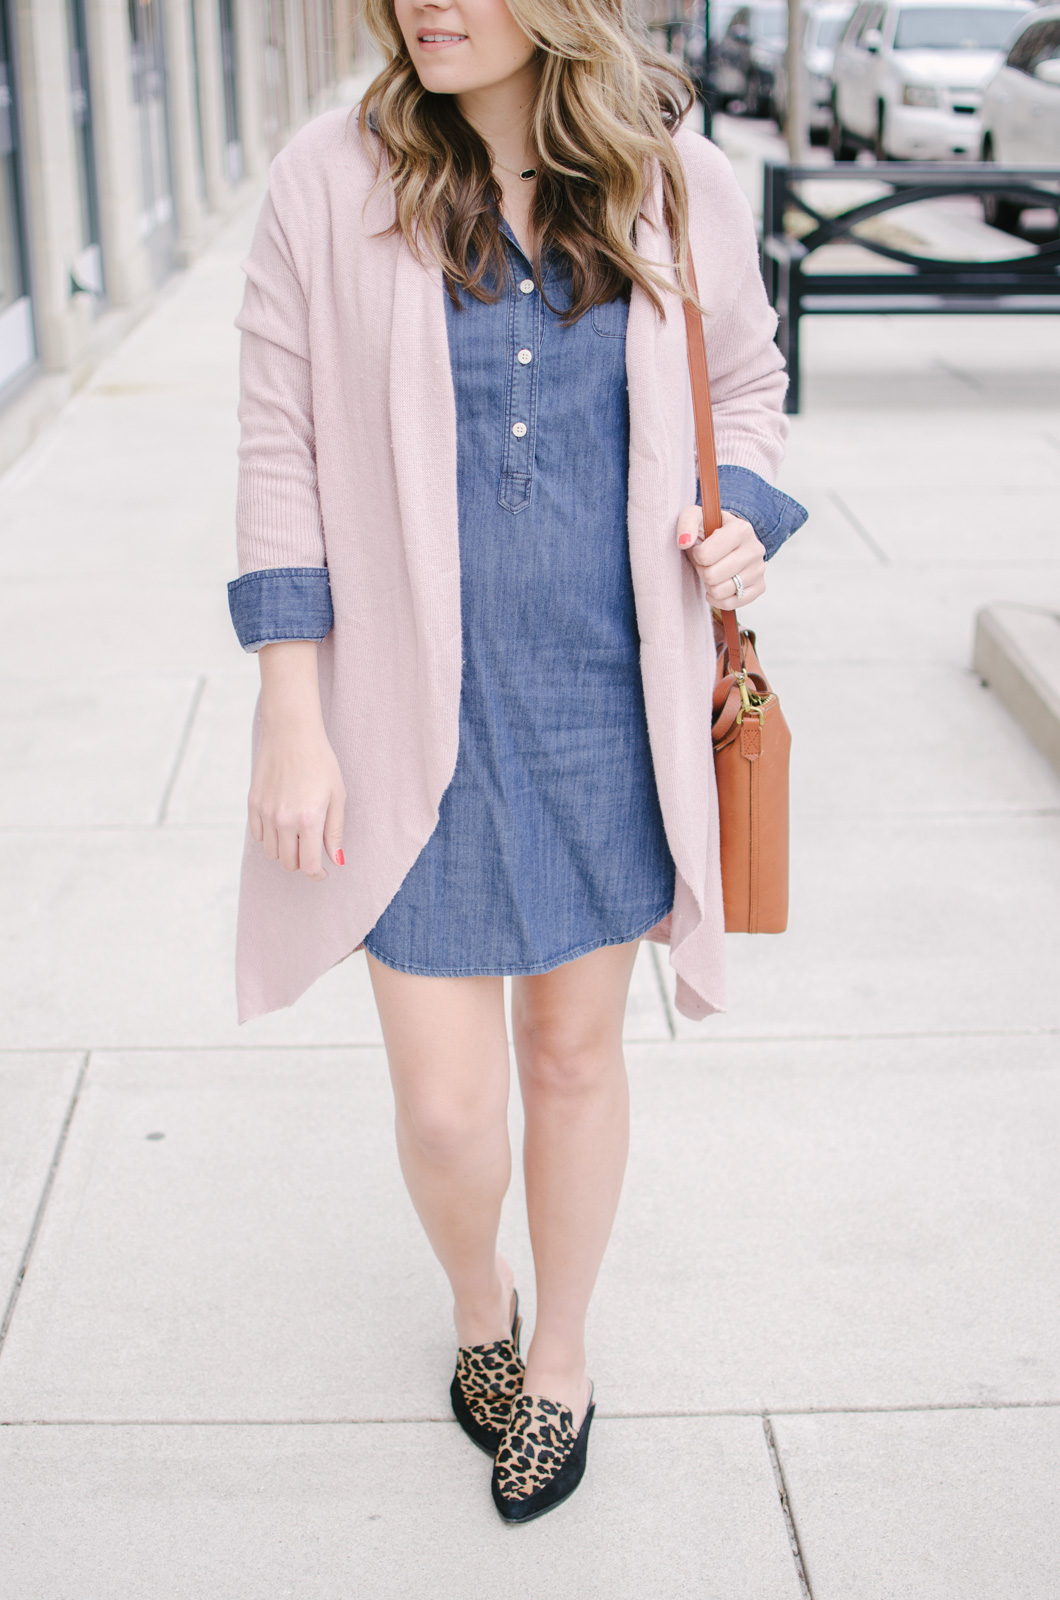 chambray dress outfit for spring - cute spring outfit idea chambray | bylaurenm.com